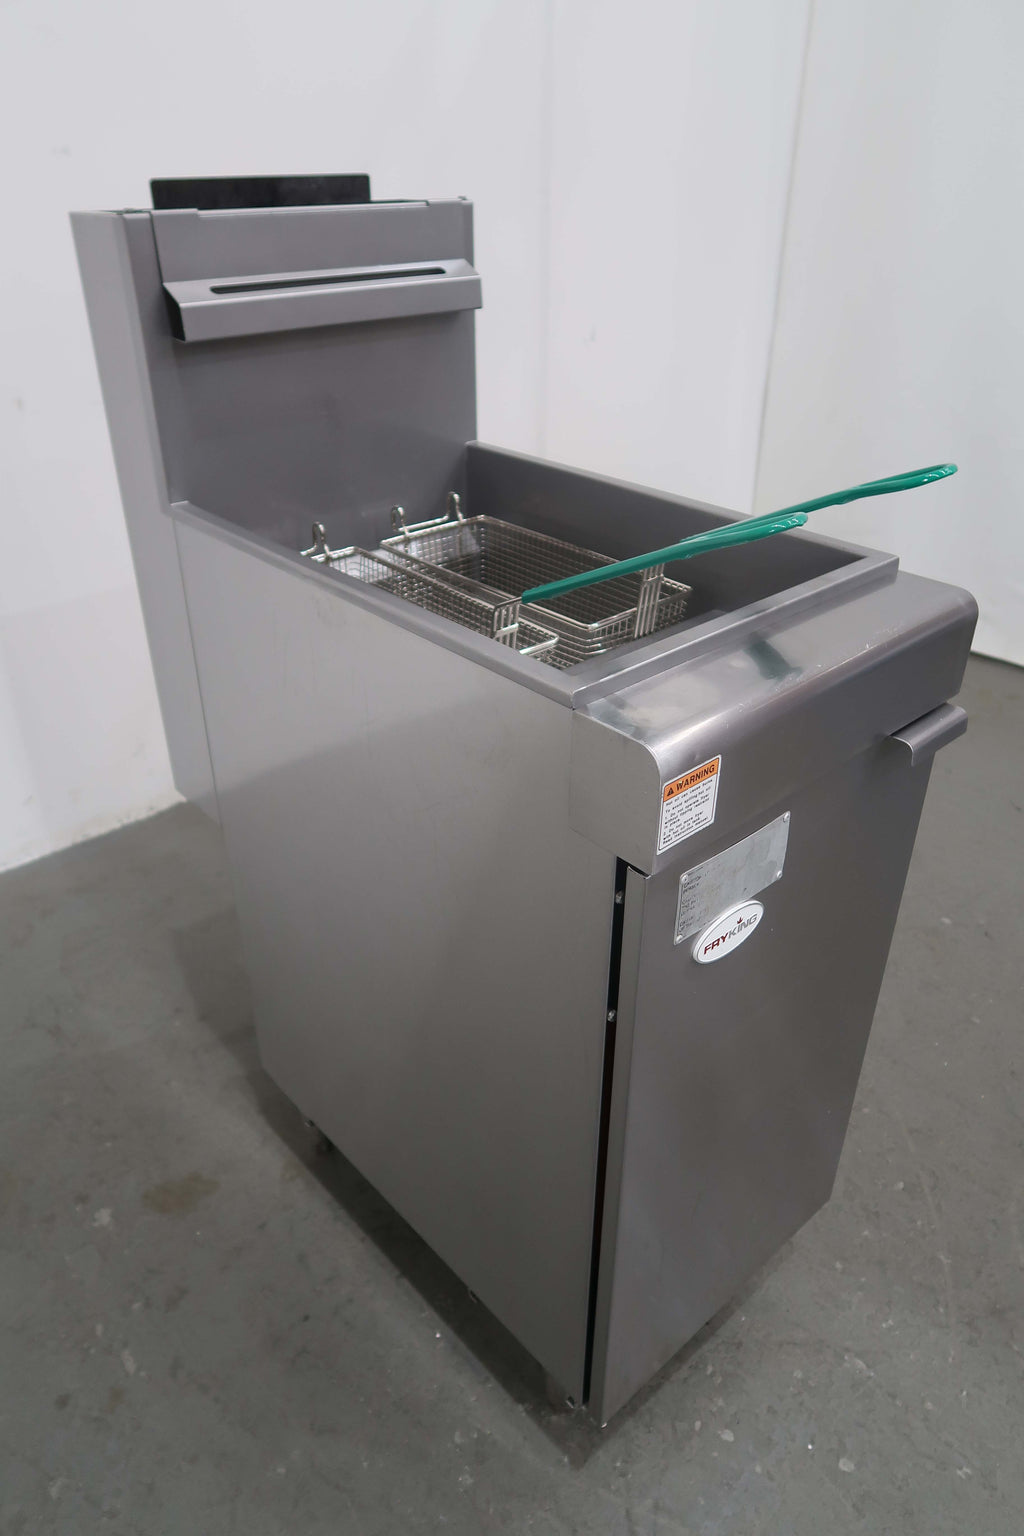 Fryking 400 TUBE FRYER 1 Pan Fryer (4)